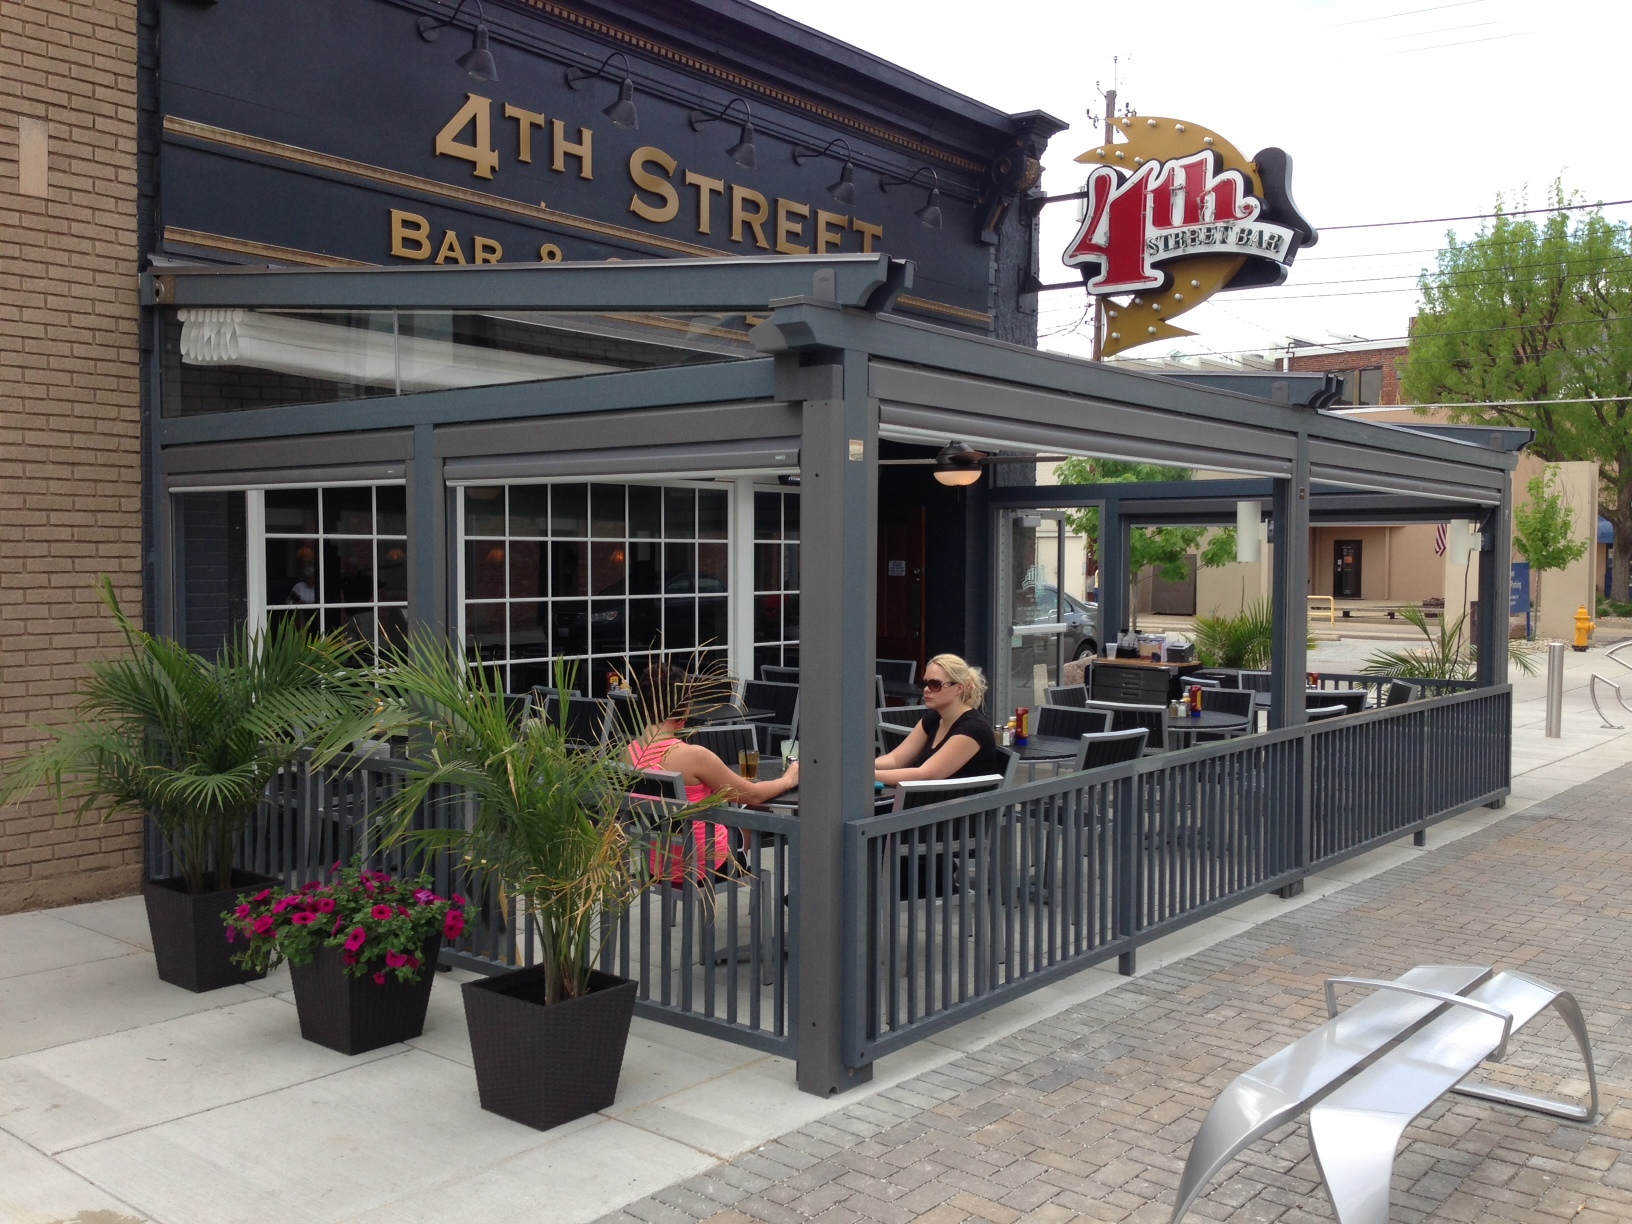 This local establishment was able to attract new customers by providing an out door environment that they can enjoy no matter if it is rain or shine.